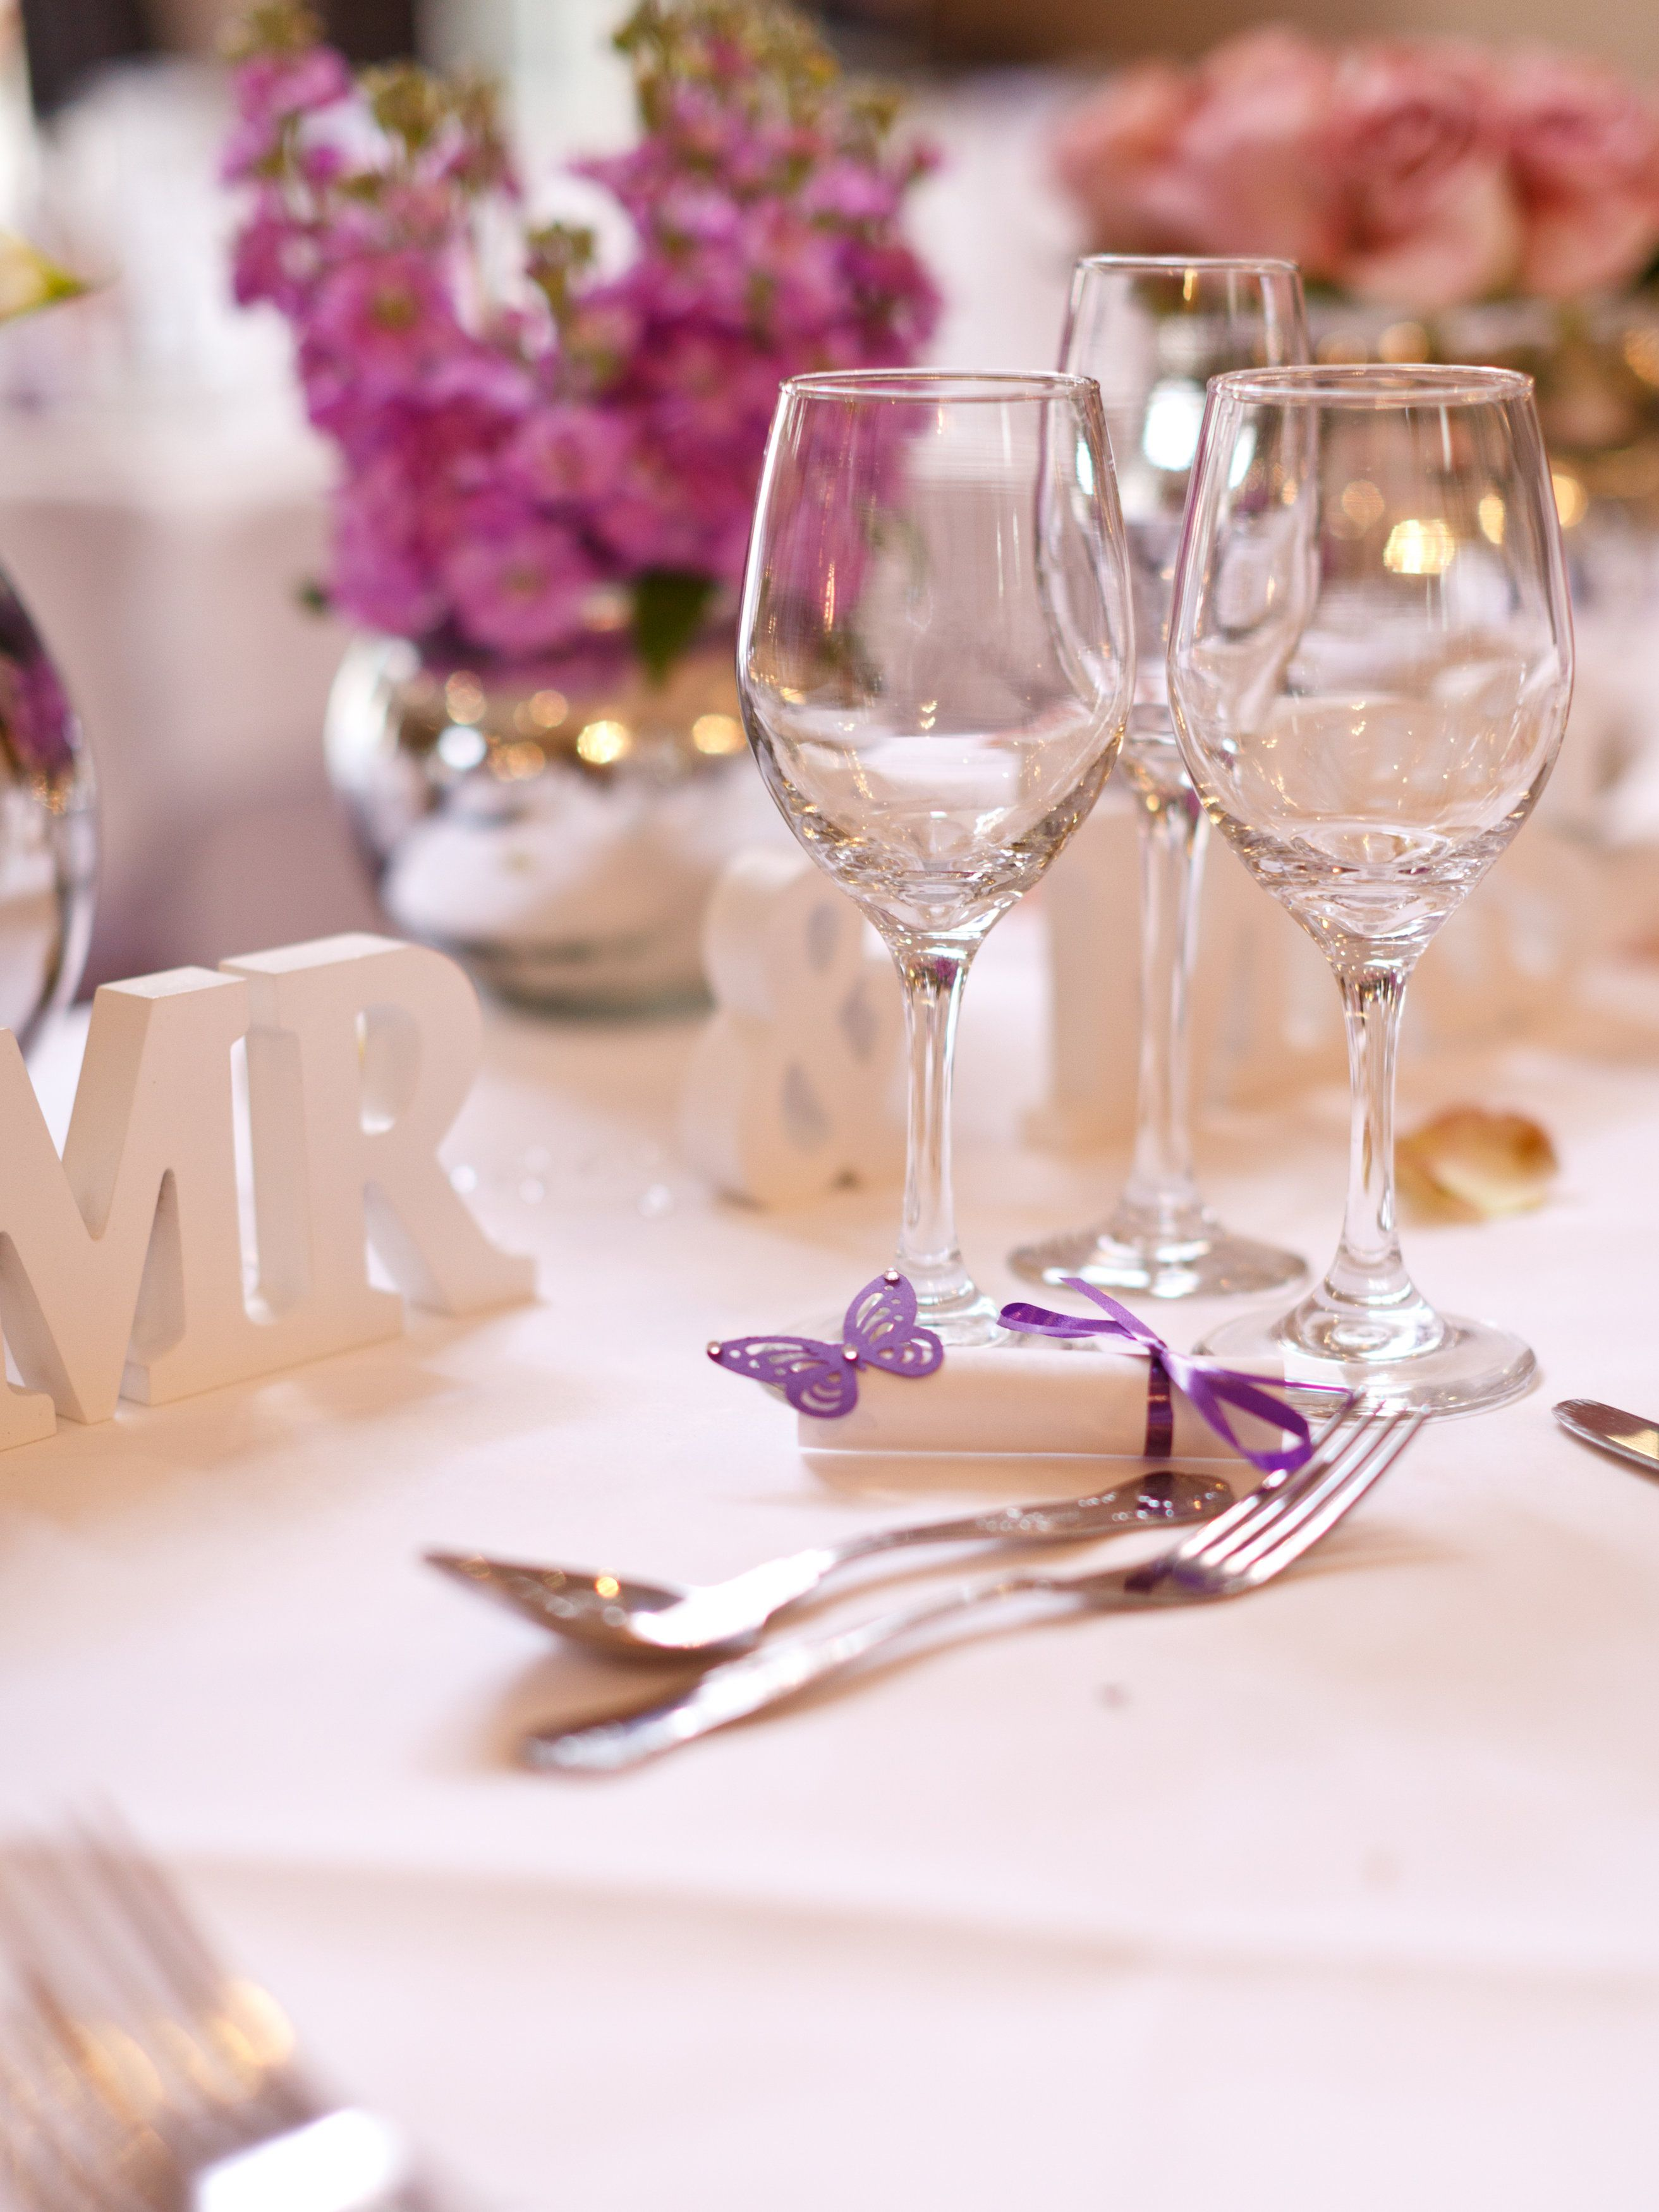 Lovely wedding venue decoration set for your dream wedding day at lovely wedding venue decoration set for your dream wedding day at chilston park in kent junglespirit Image collections